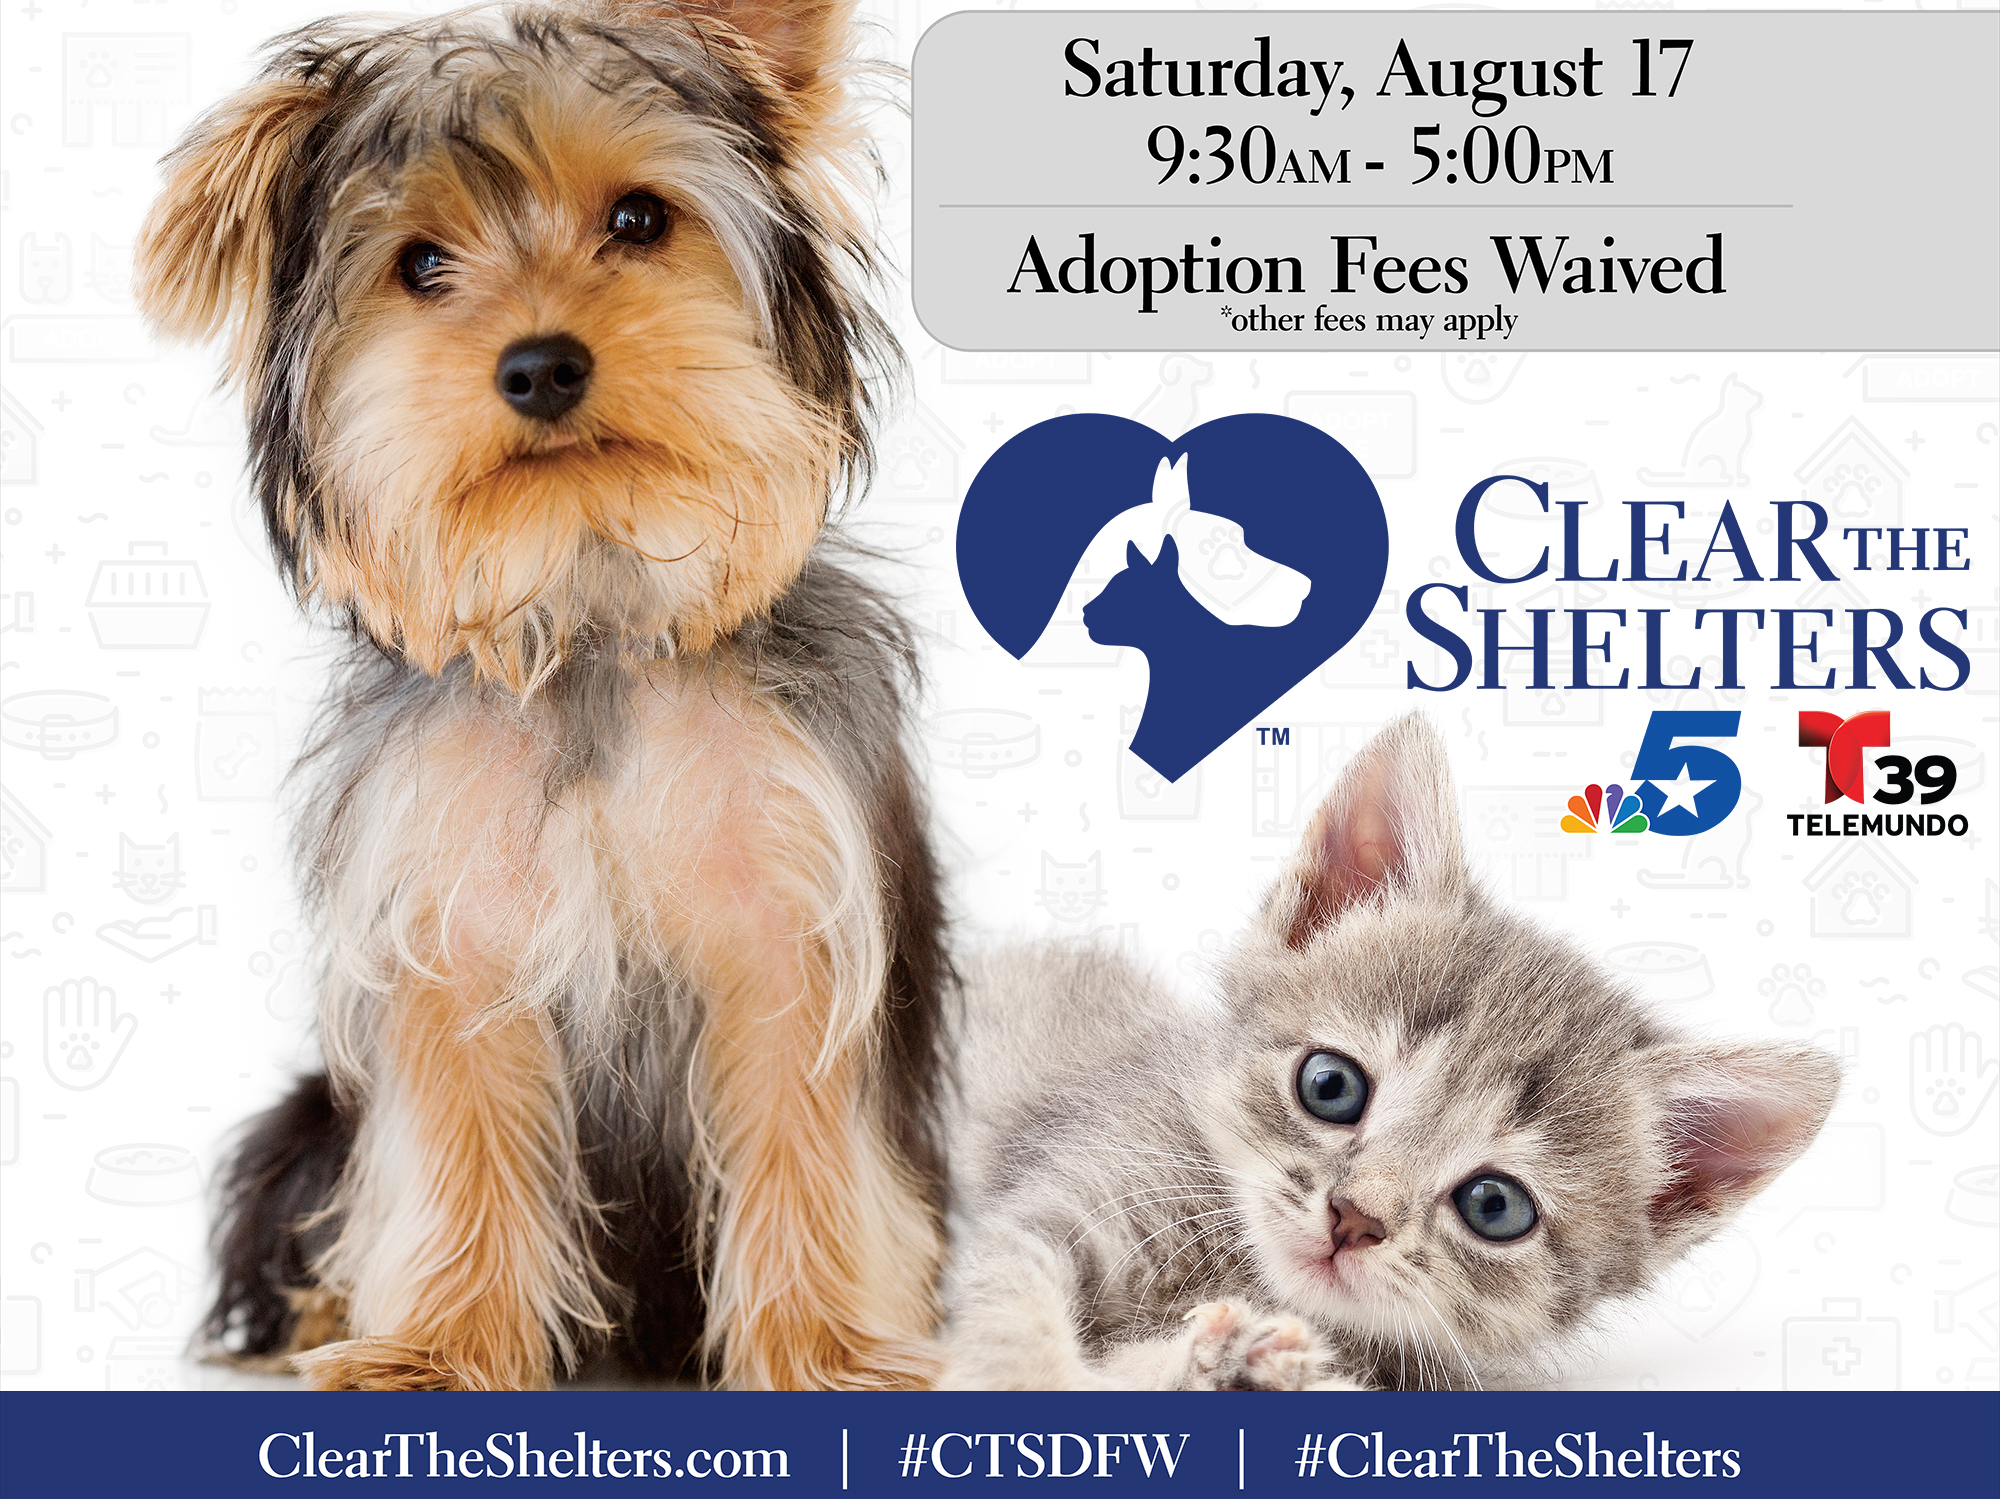 ClearTheShelters org